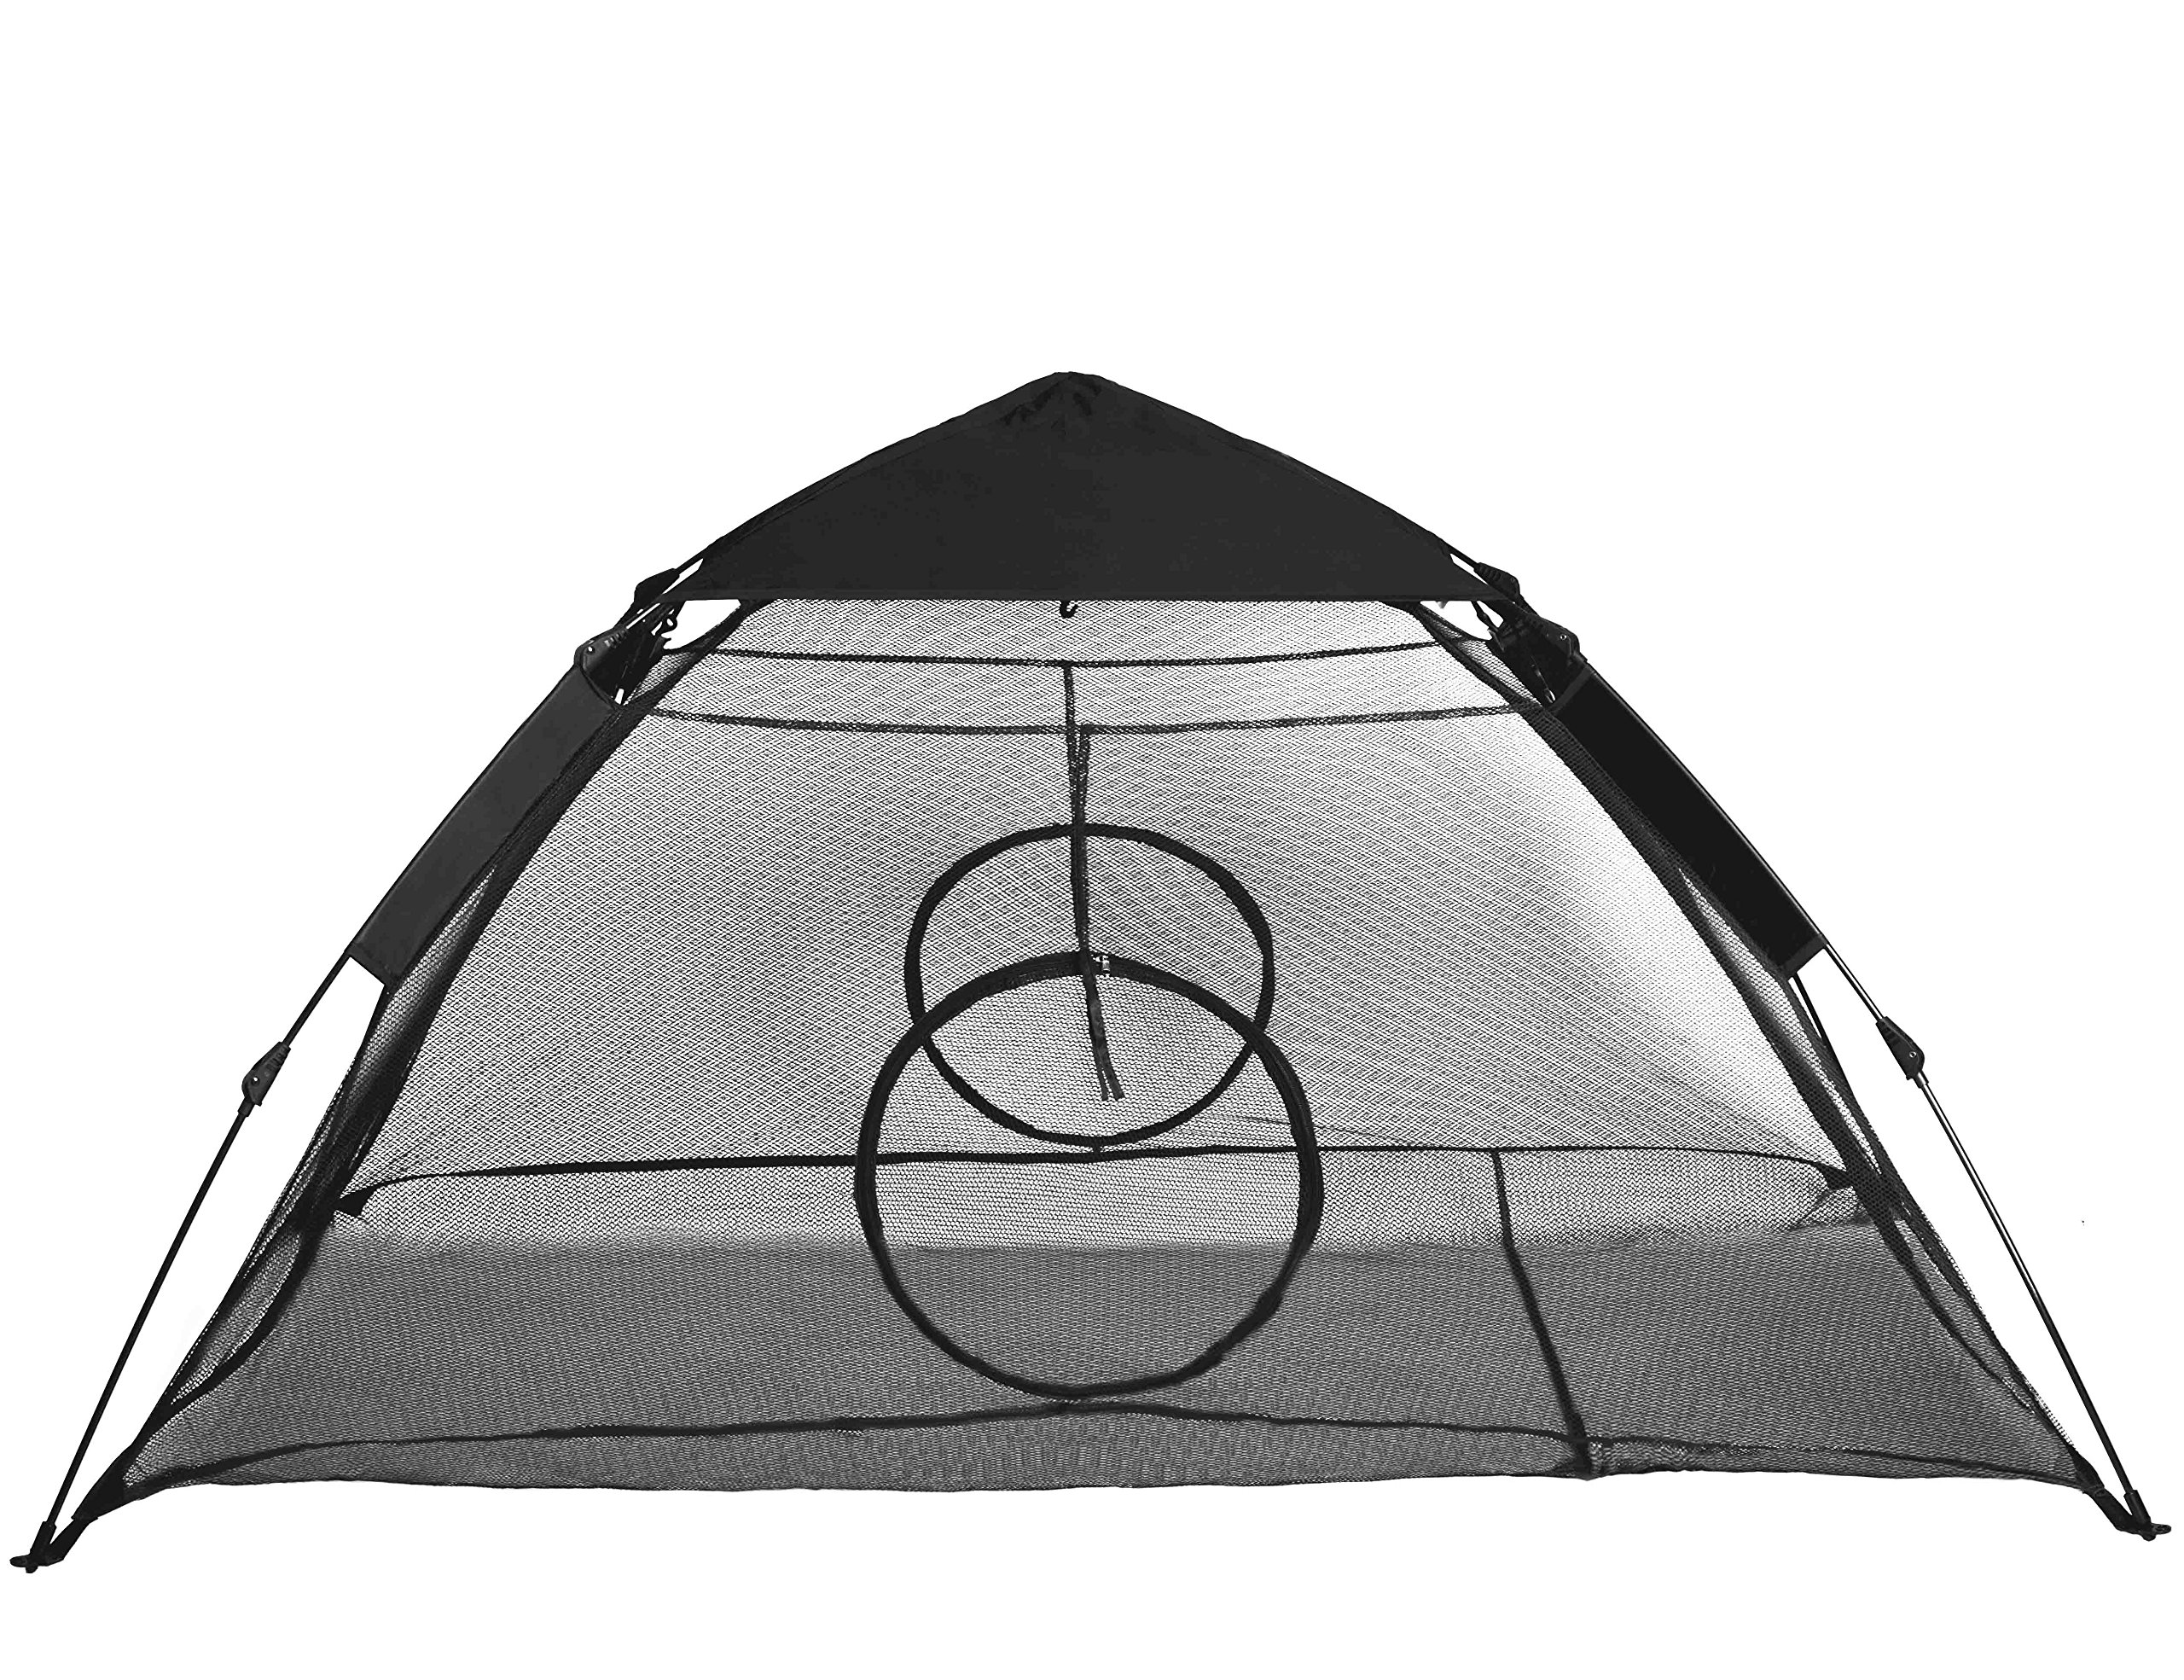 RORAIMA Outdoor use Instant Portable Cat Tent or Habitat with Rain Fly and Two Entrance for Indoor Cats, Air Ventilate Mesh Fabric, Size 75'' L X 60'' W X 36'' H Black by RORAIMA